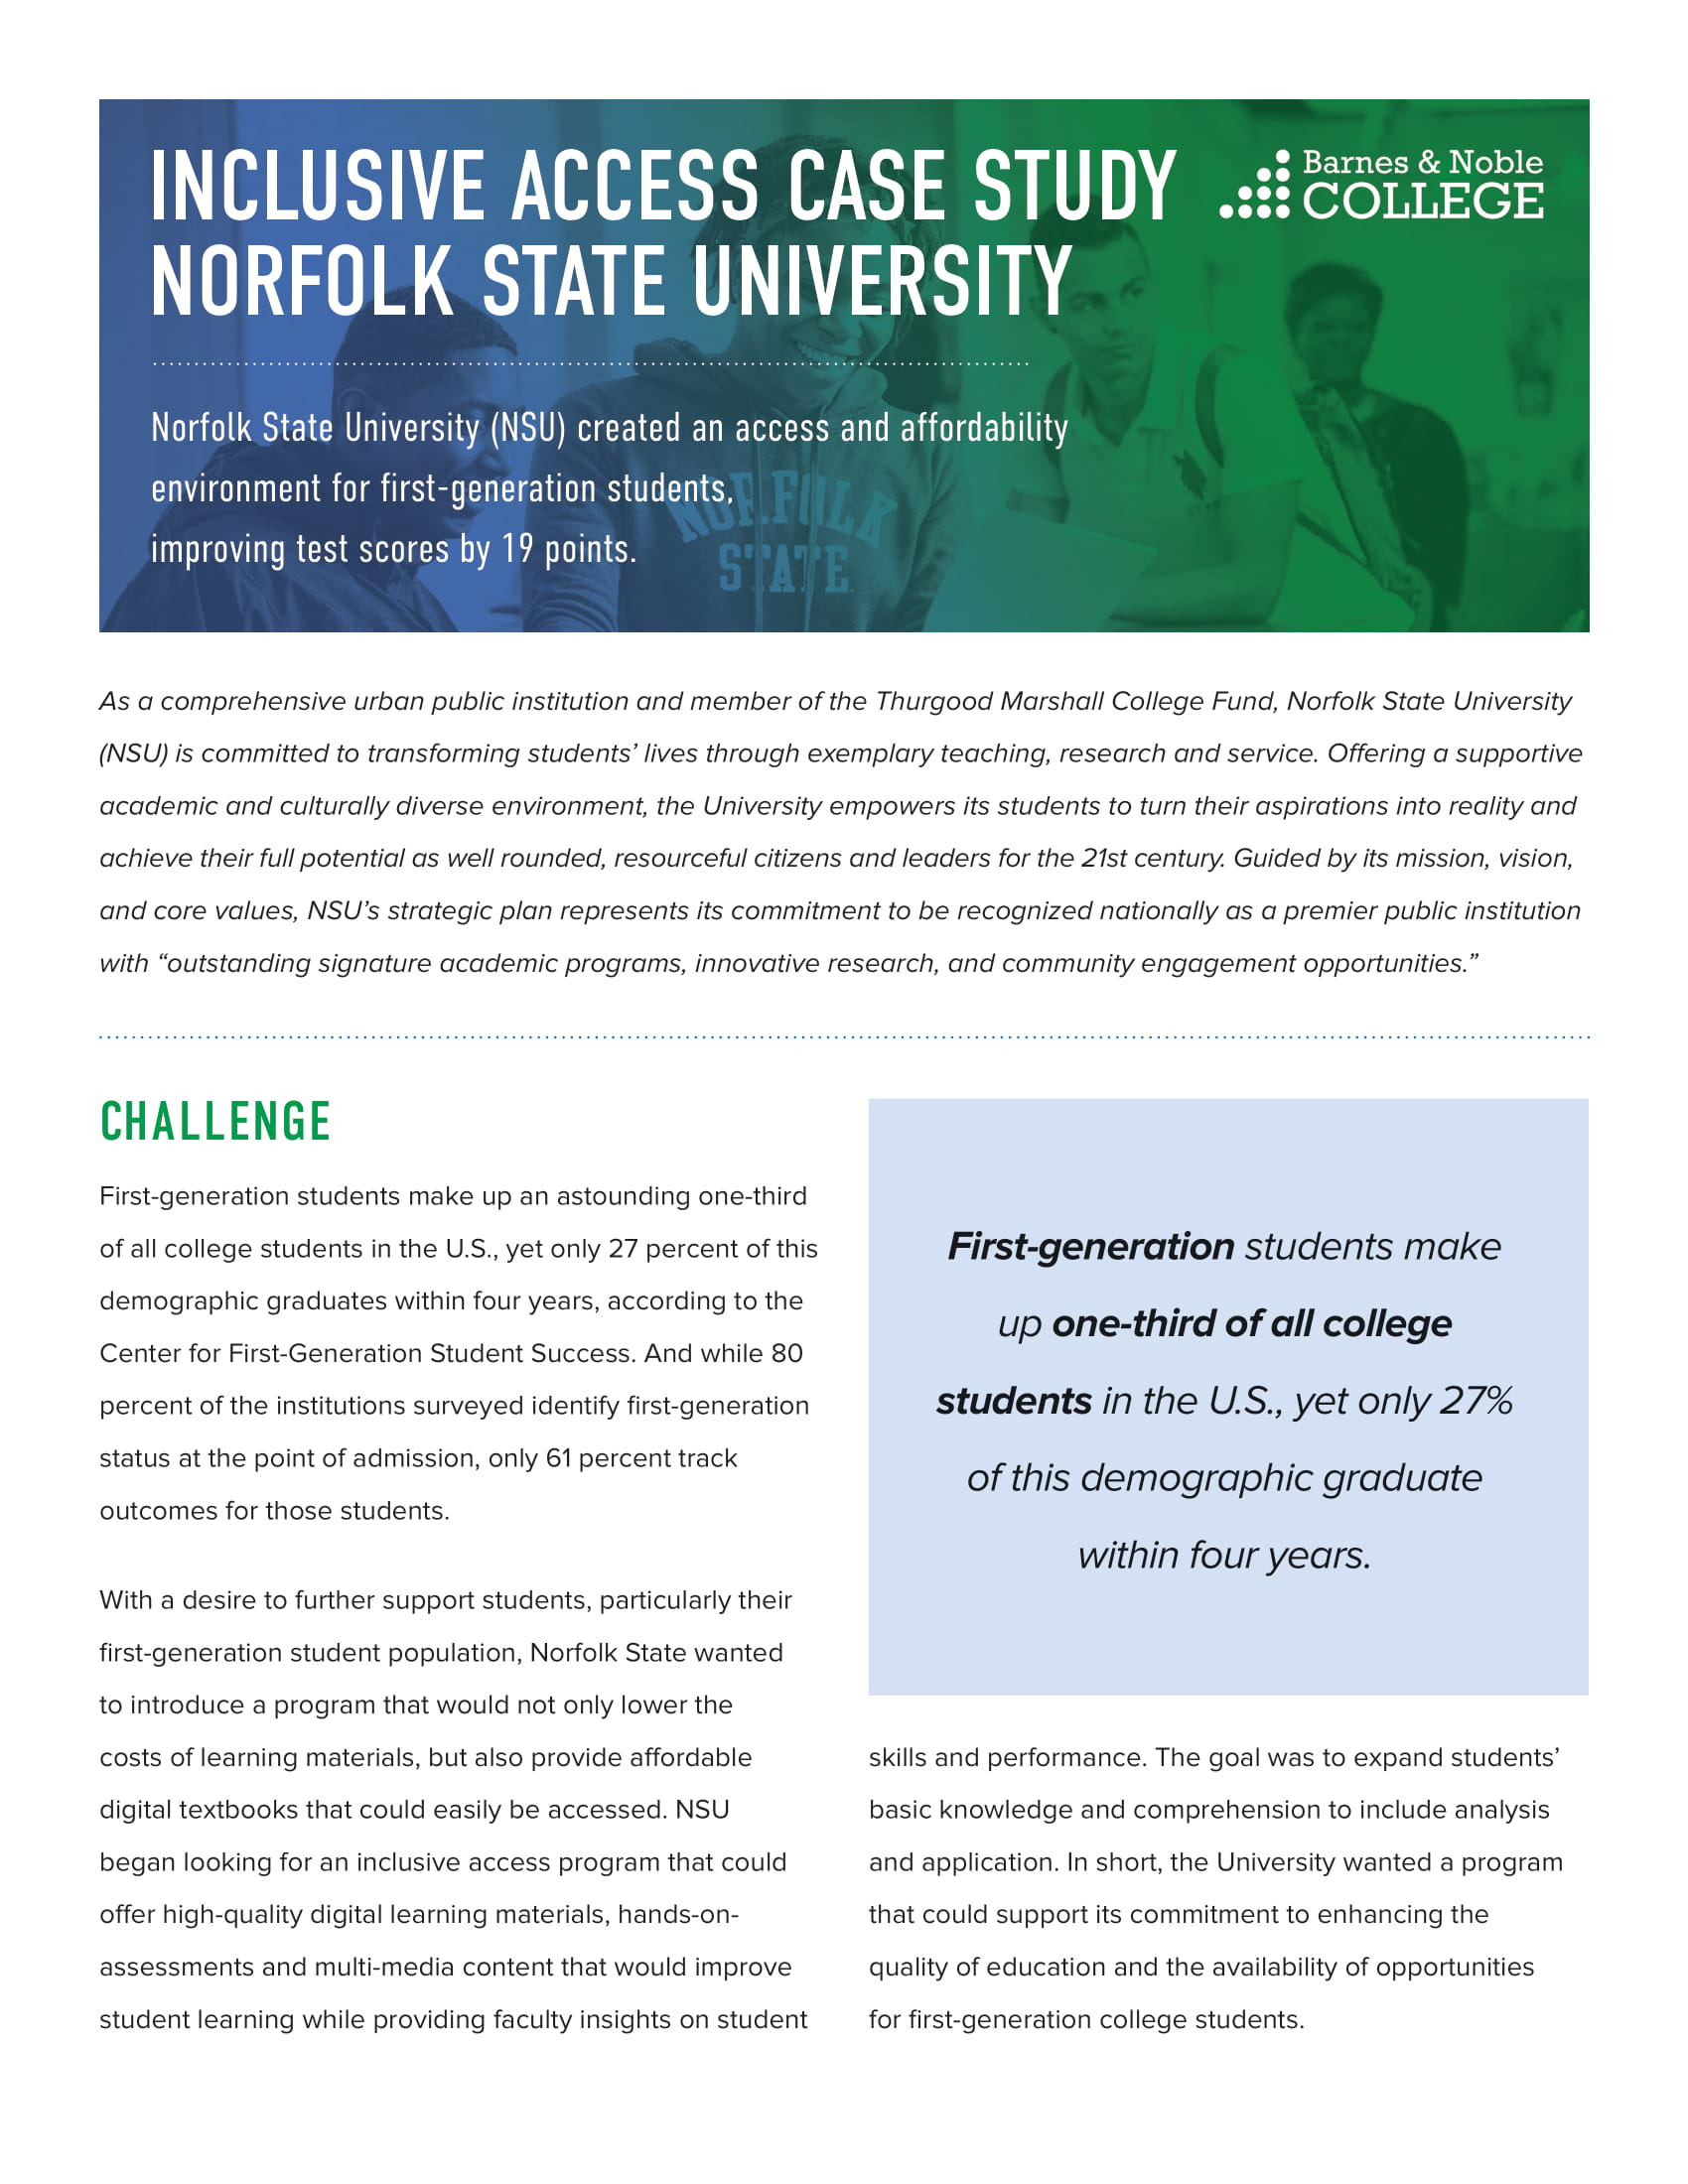 Norfolk State First Day Case Study